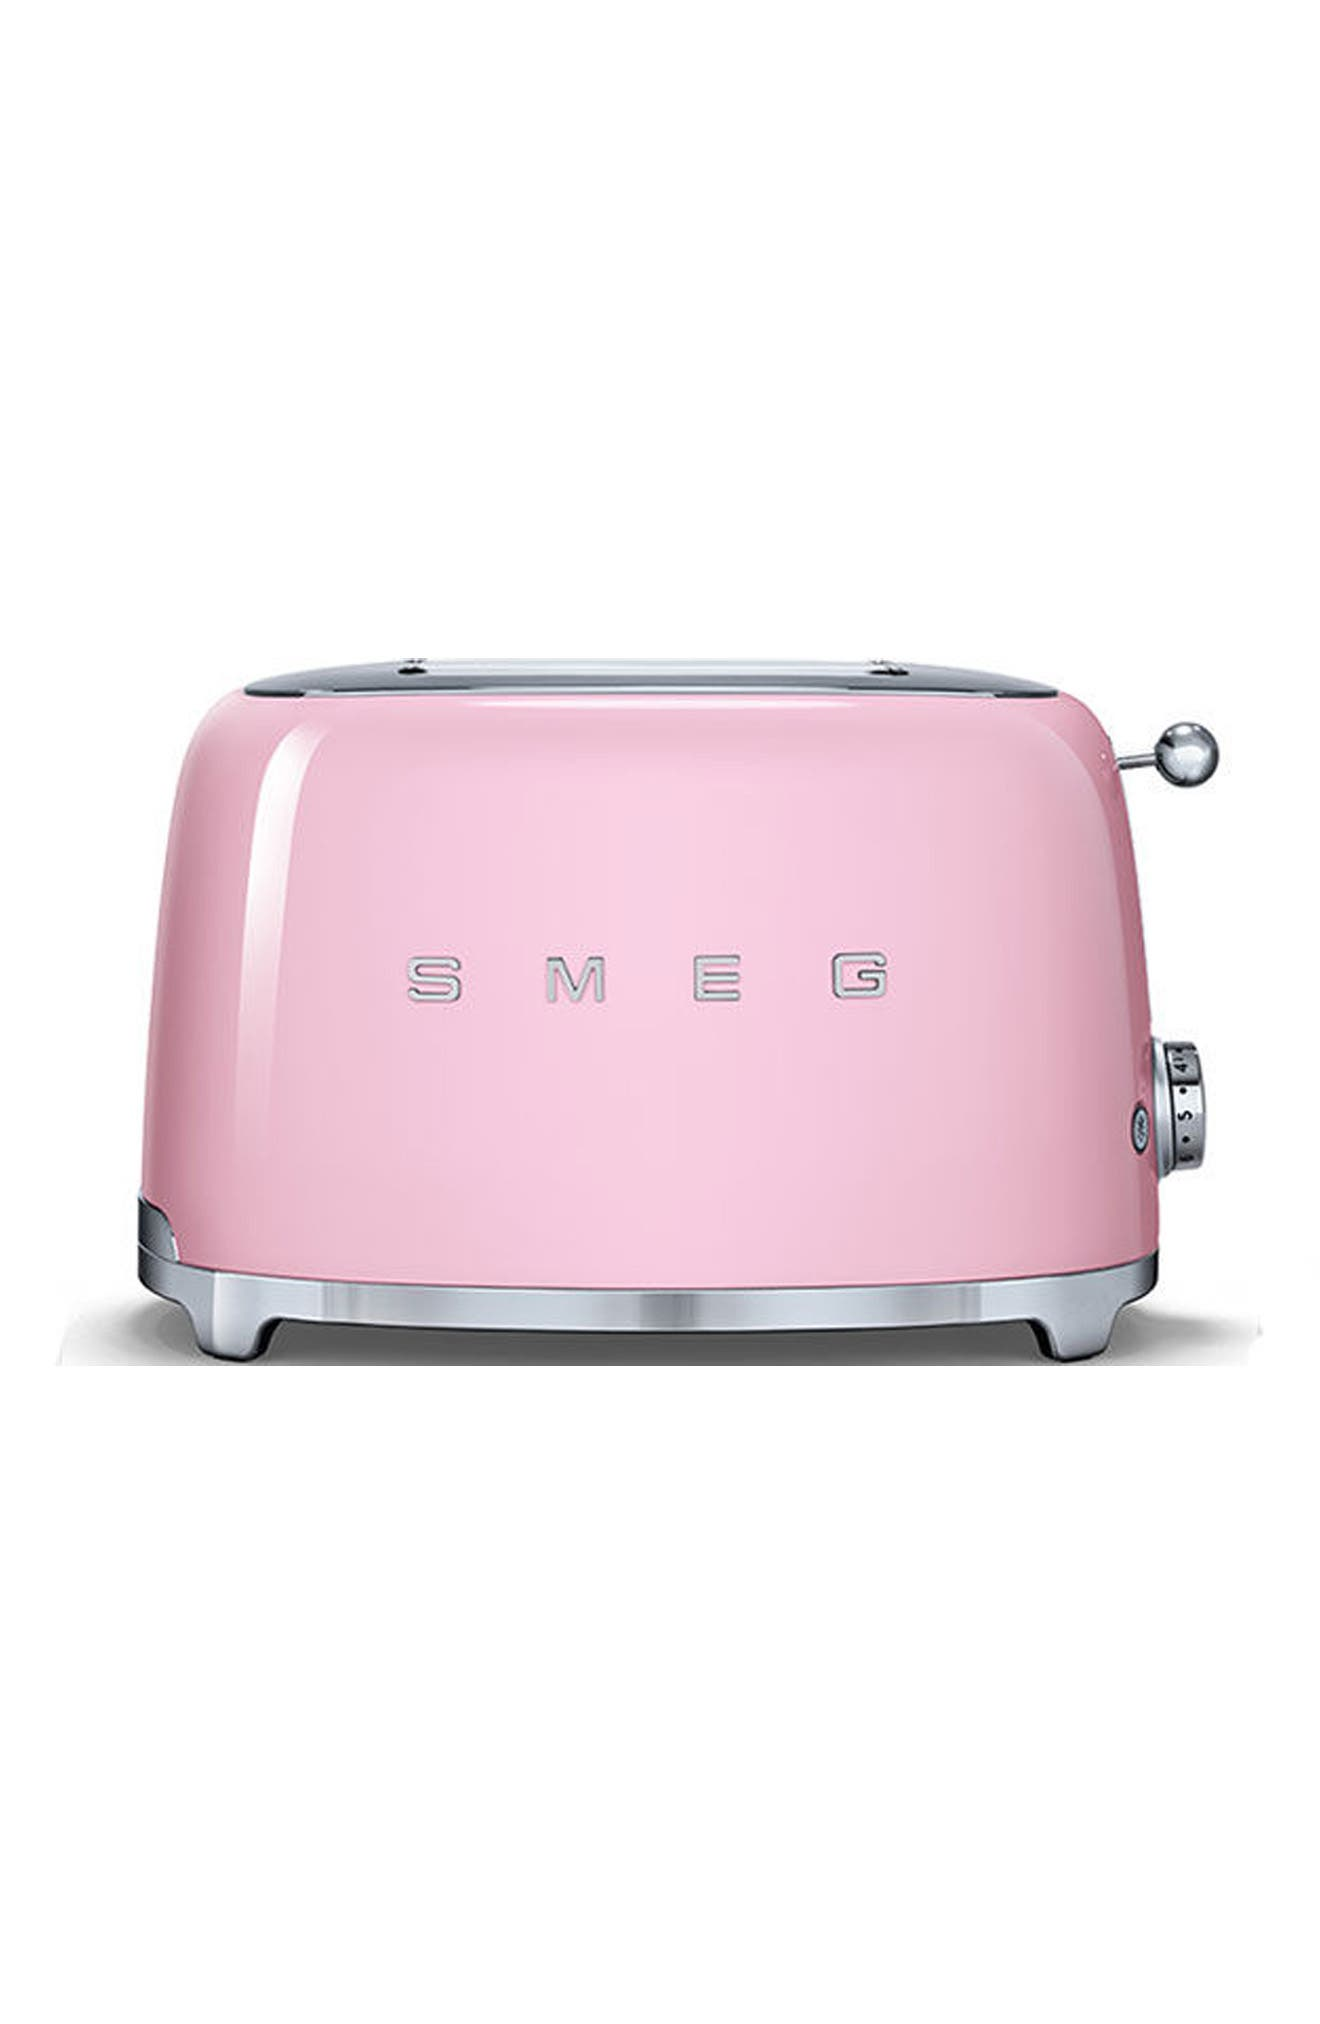 50s Retro Style Two-Slice Toaster,                         Main,                         color, Pink